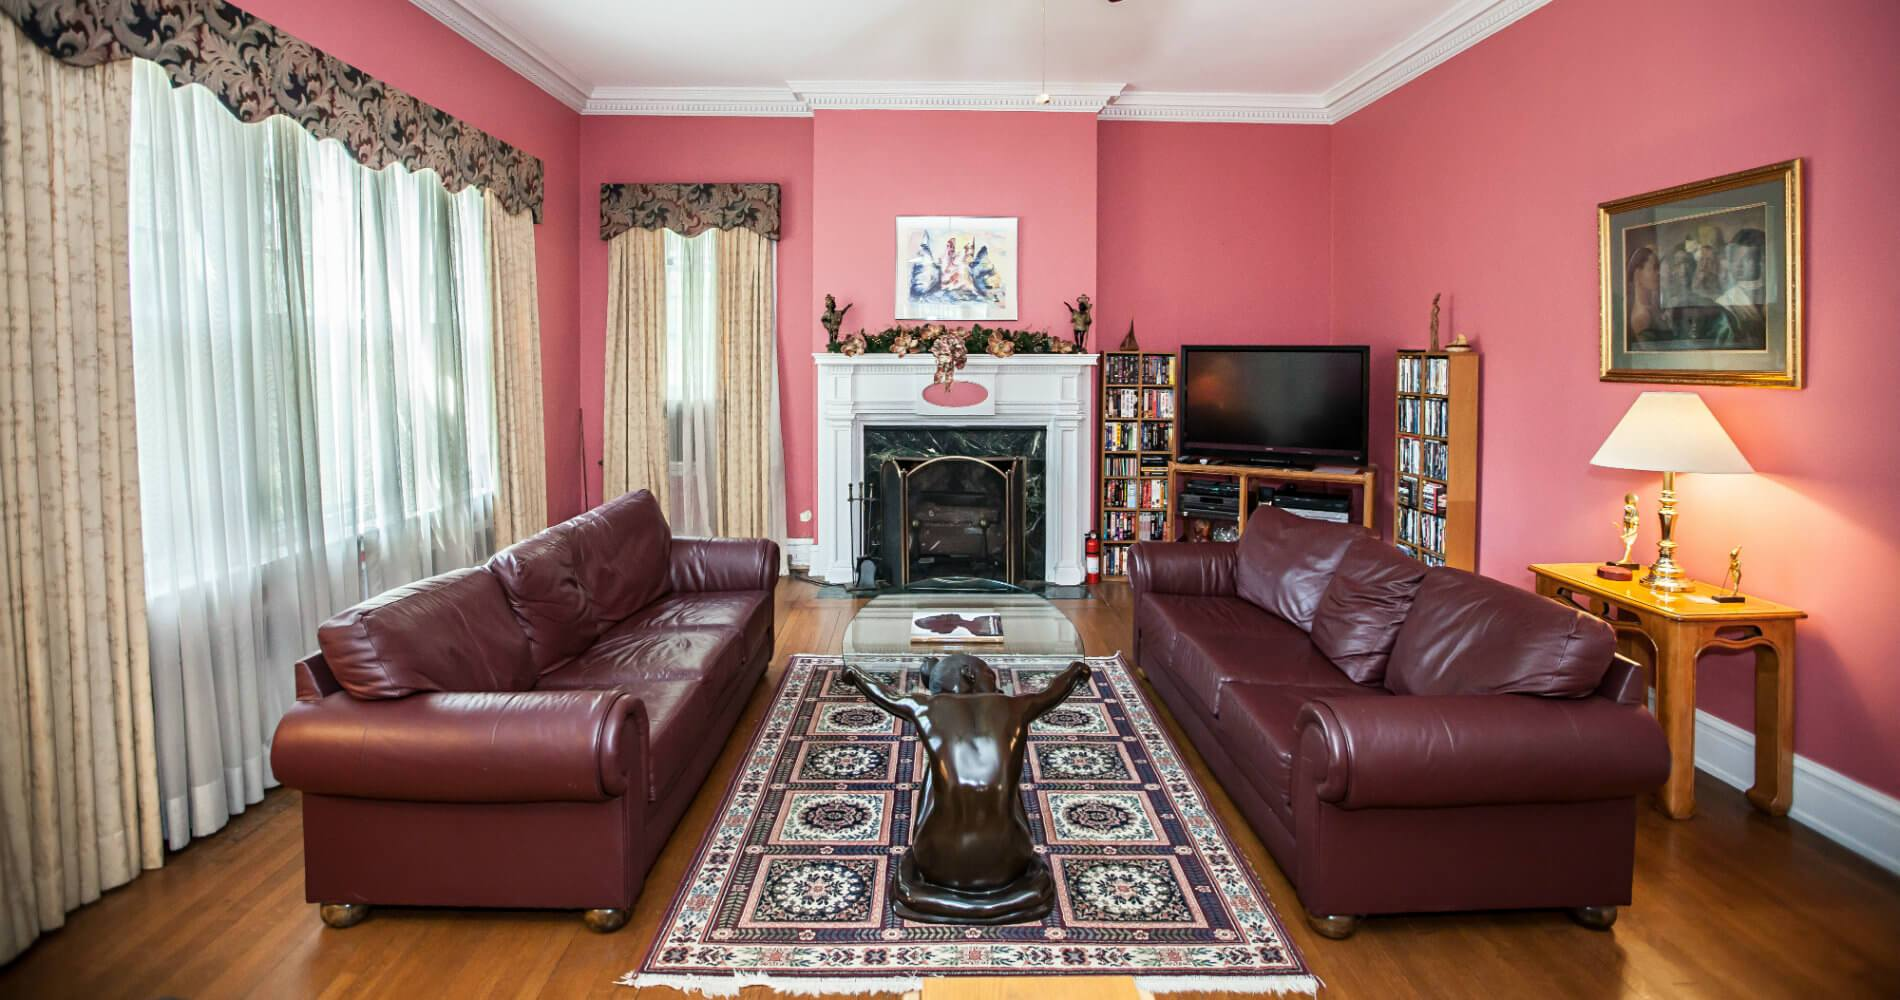 Picture of the sitting room.